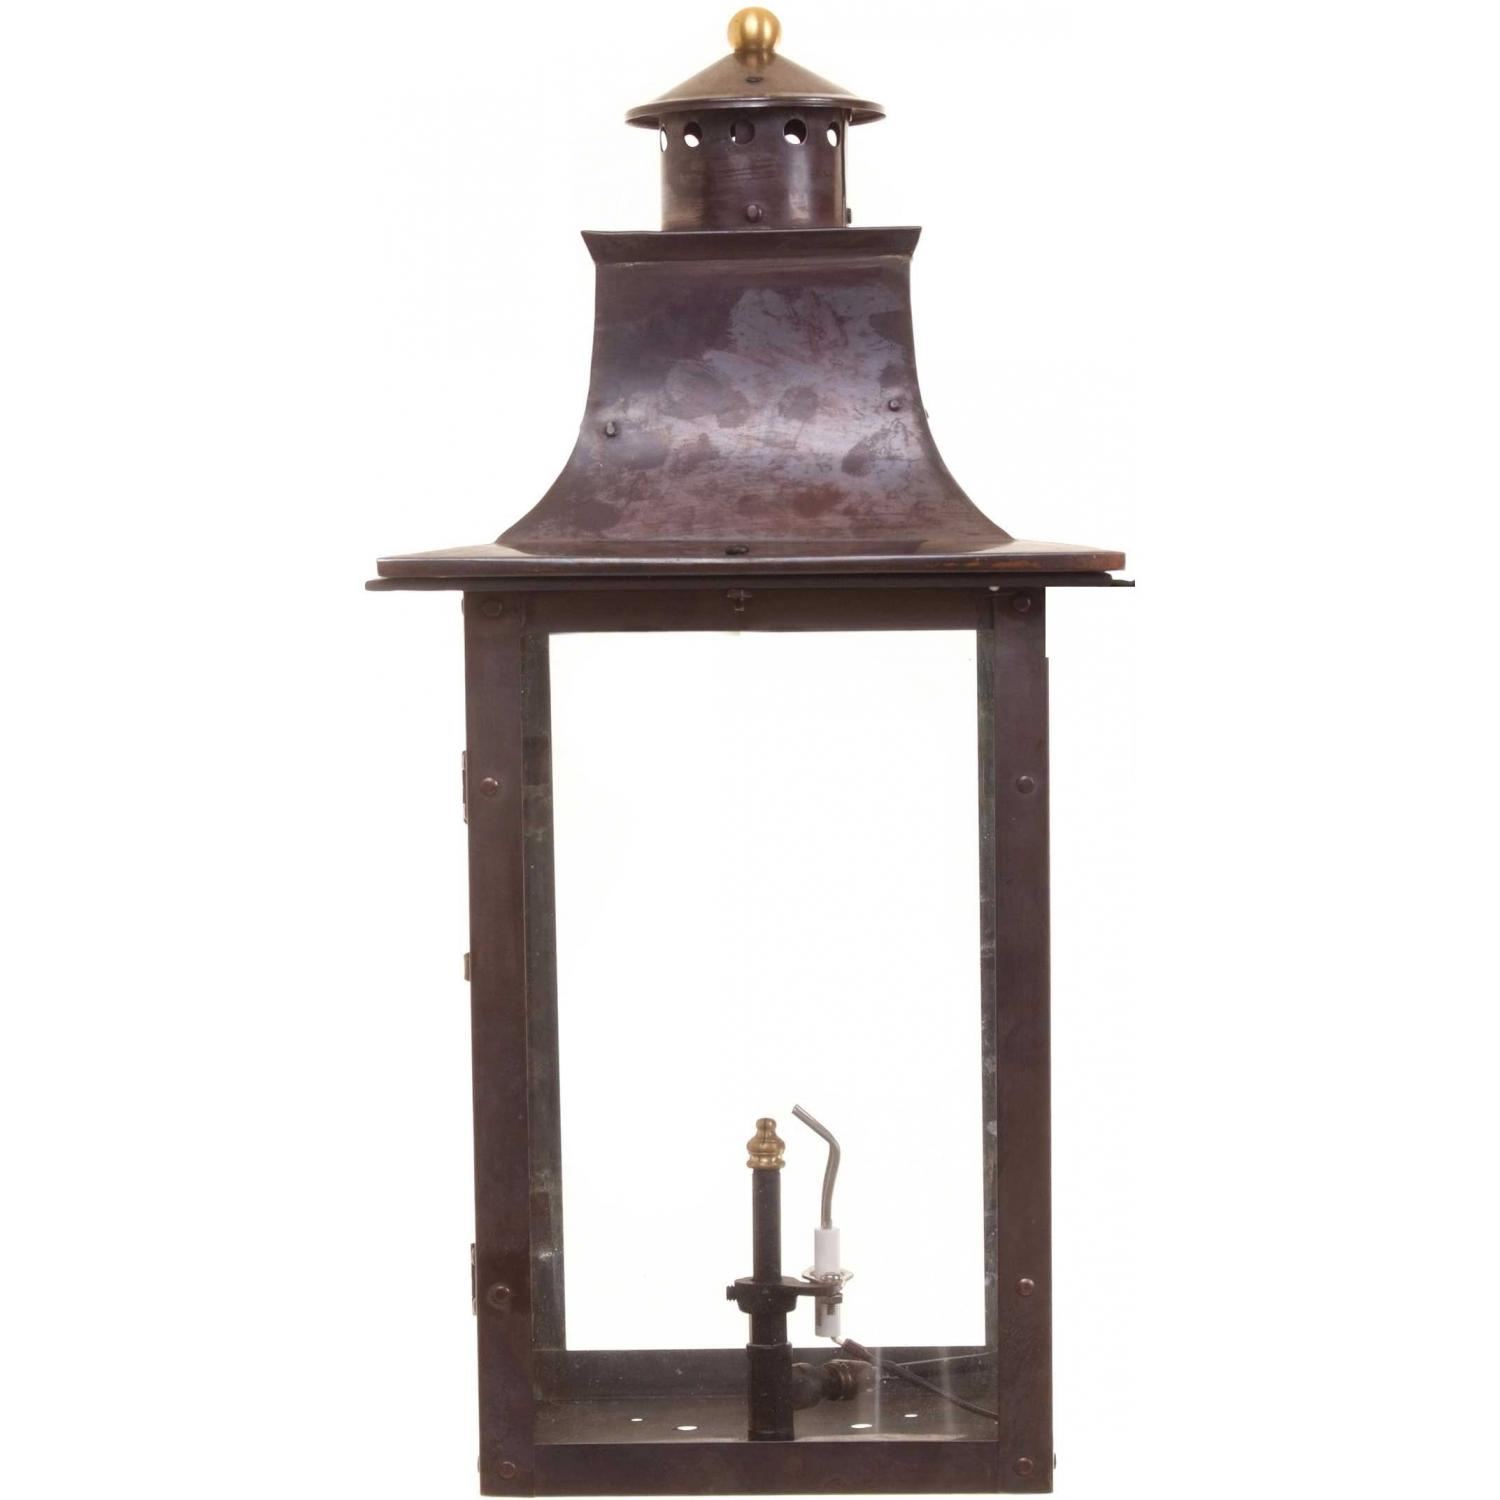 Regency GL21 Faye Rue Small Natural Gas Light With Open Flame Burner And Electronic Ignition On Gooseneck Mount